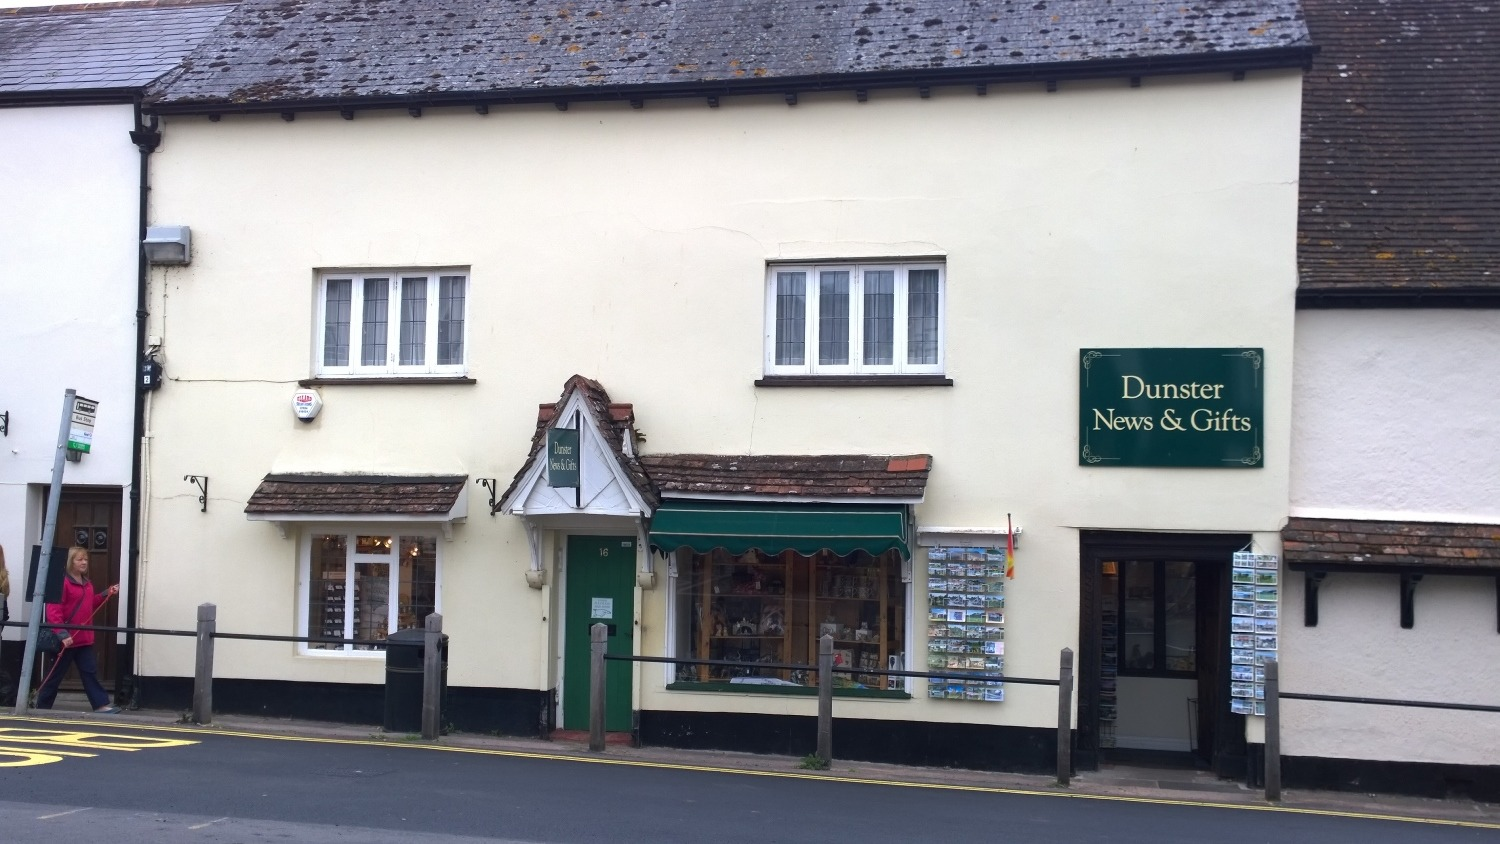 Dunster News & Gifts